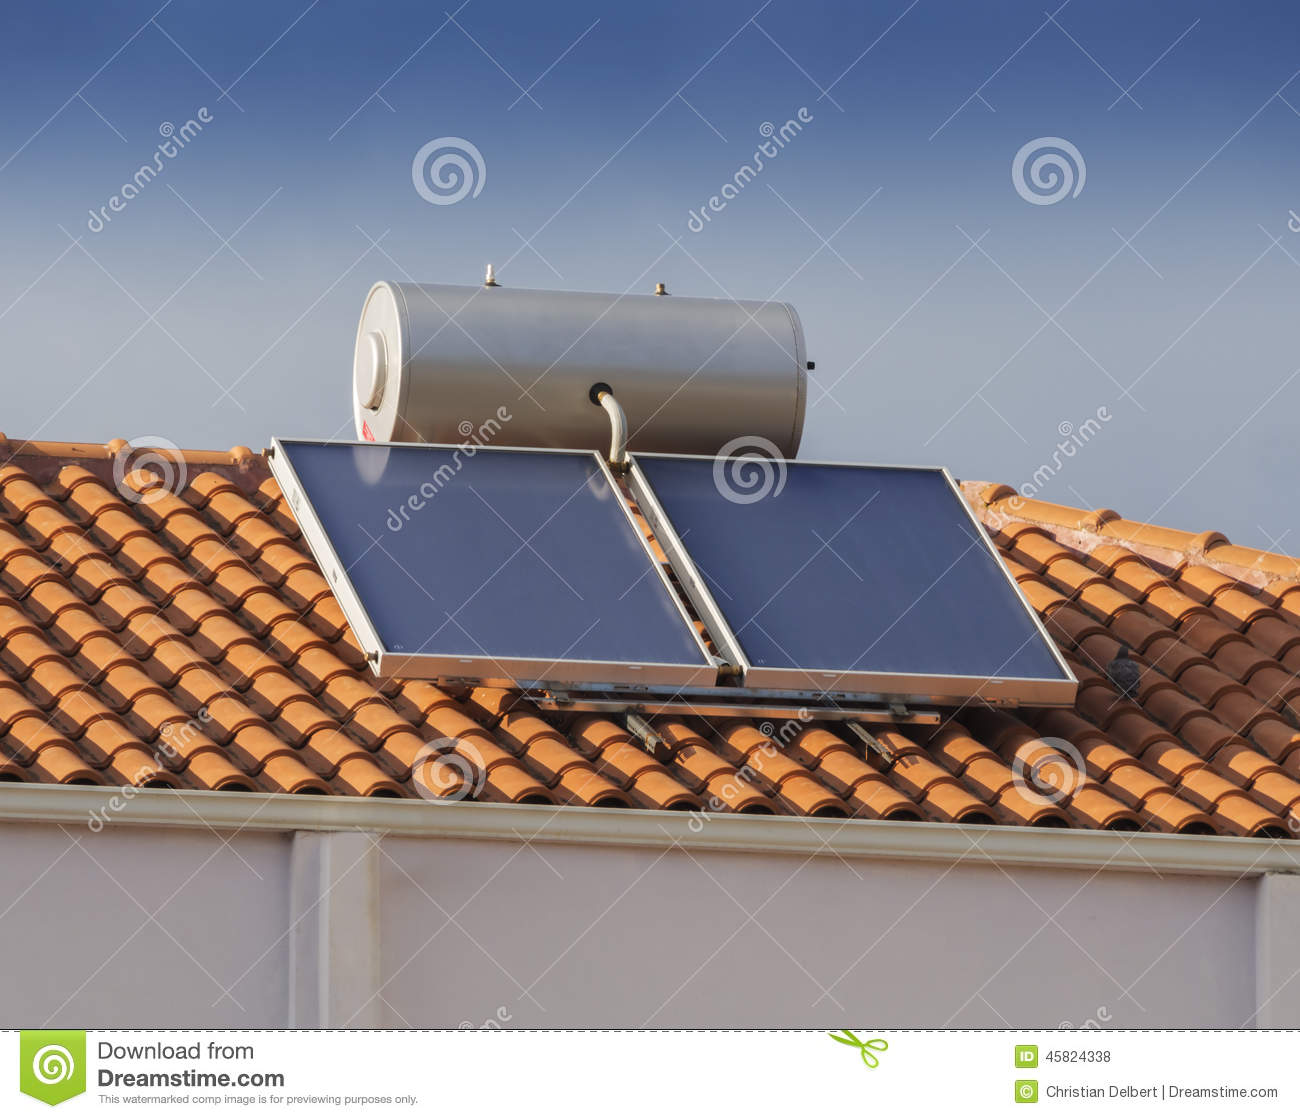 Solar water heater on roof of house stock photo image for Tin can solar heater